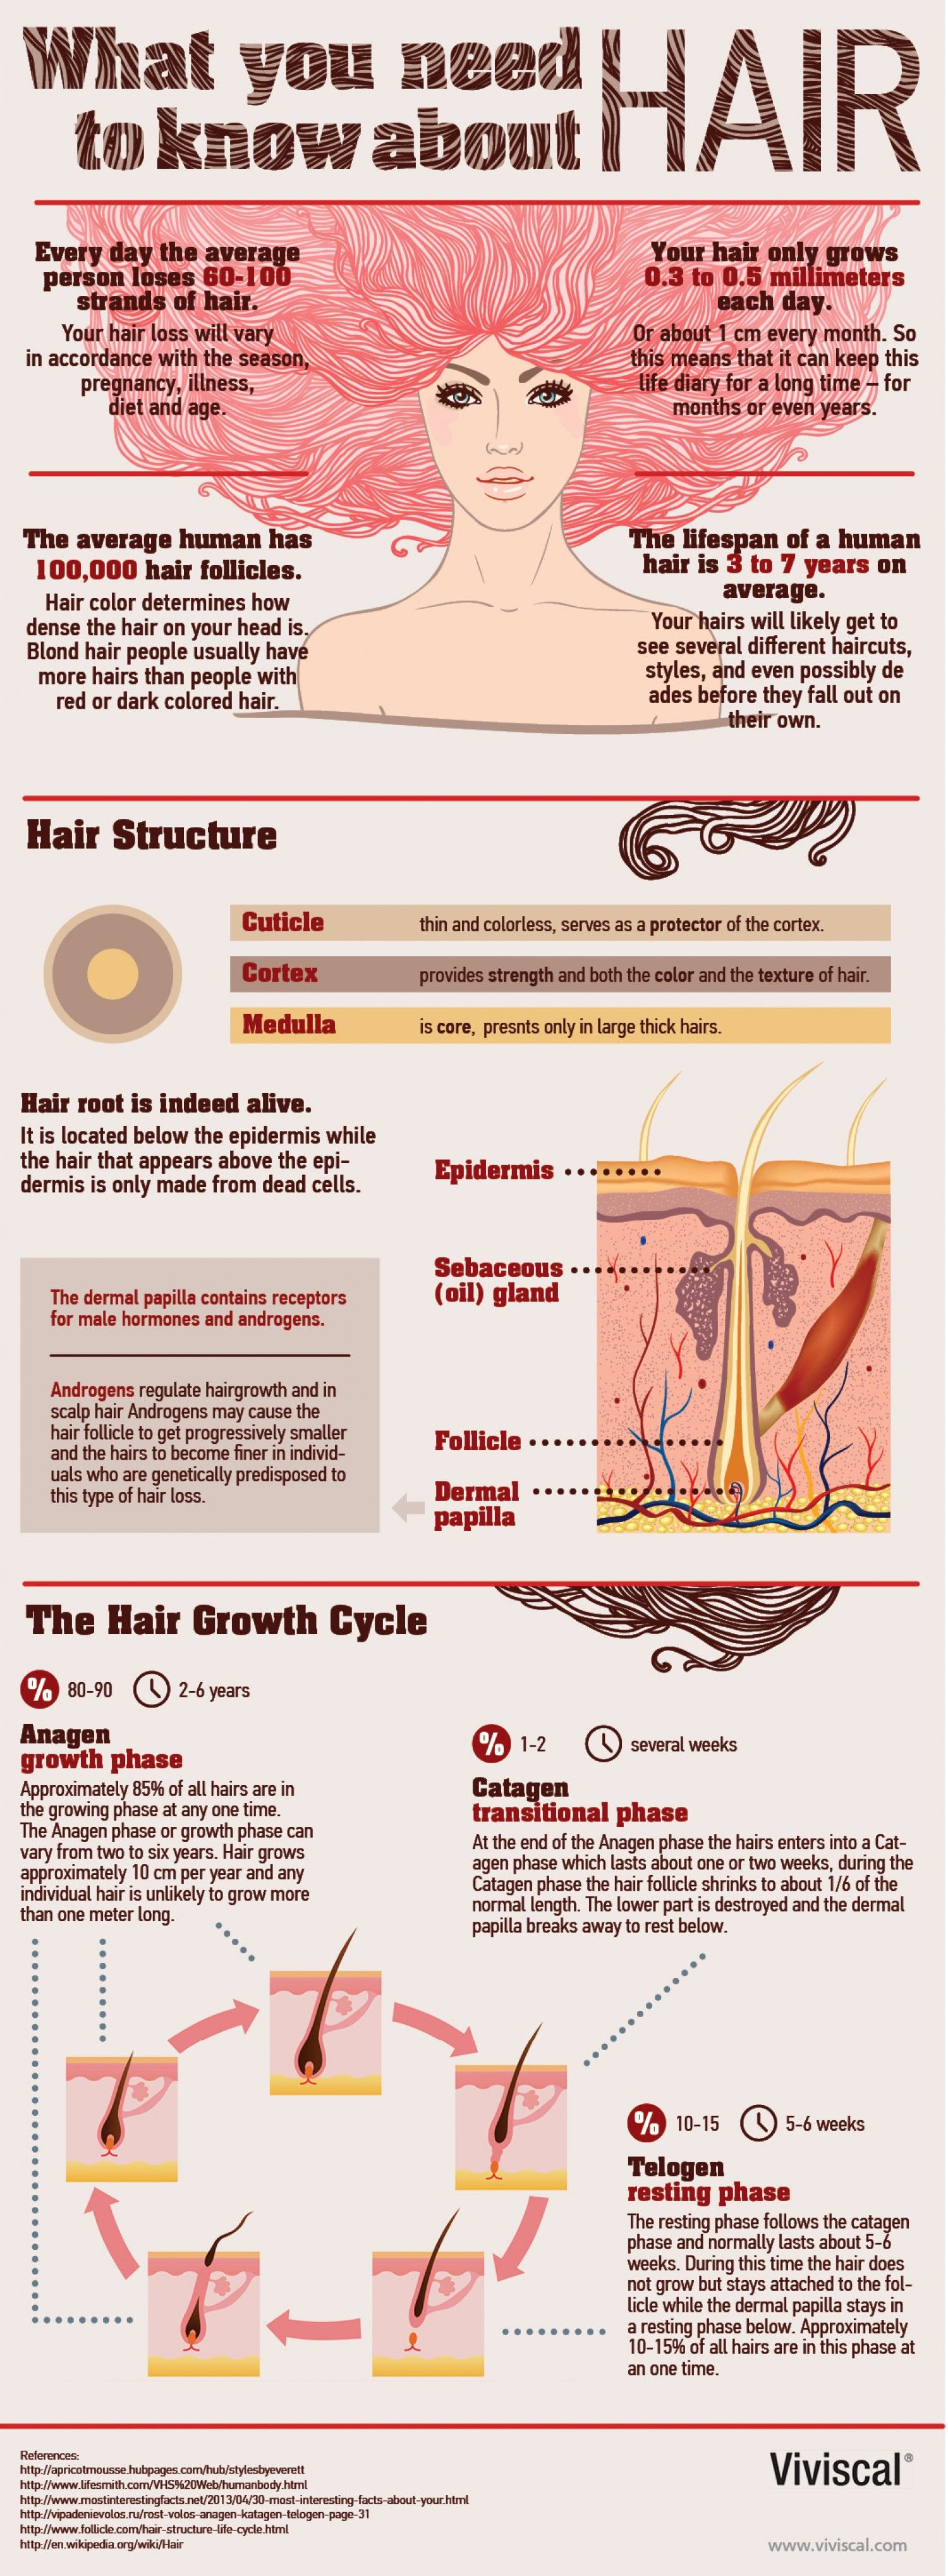 What You Need To Know About Hair Infographic